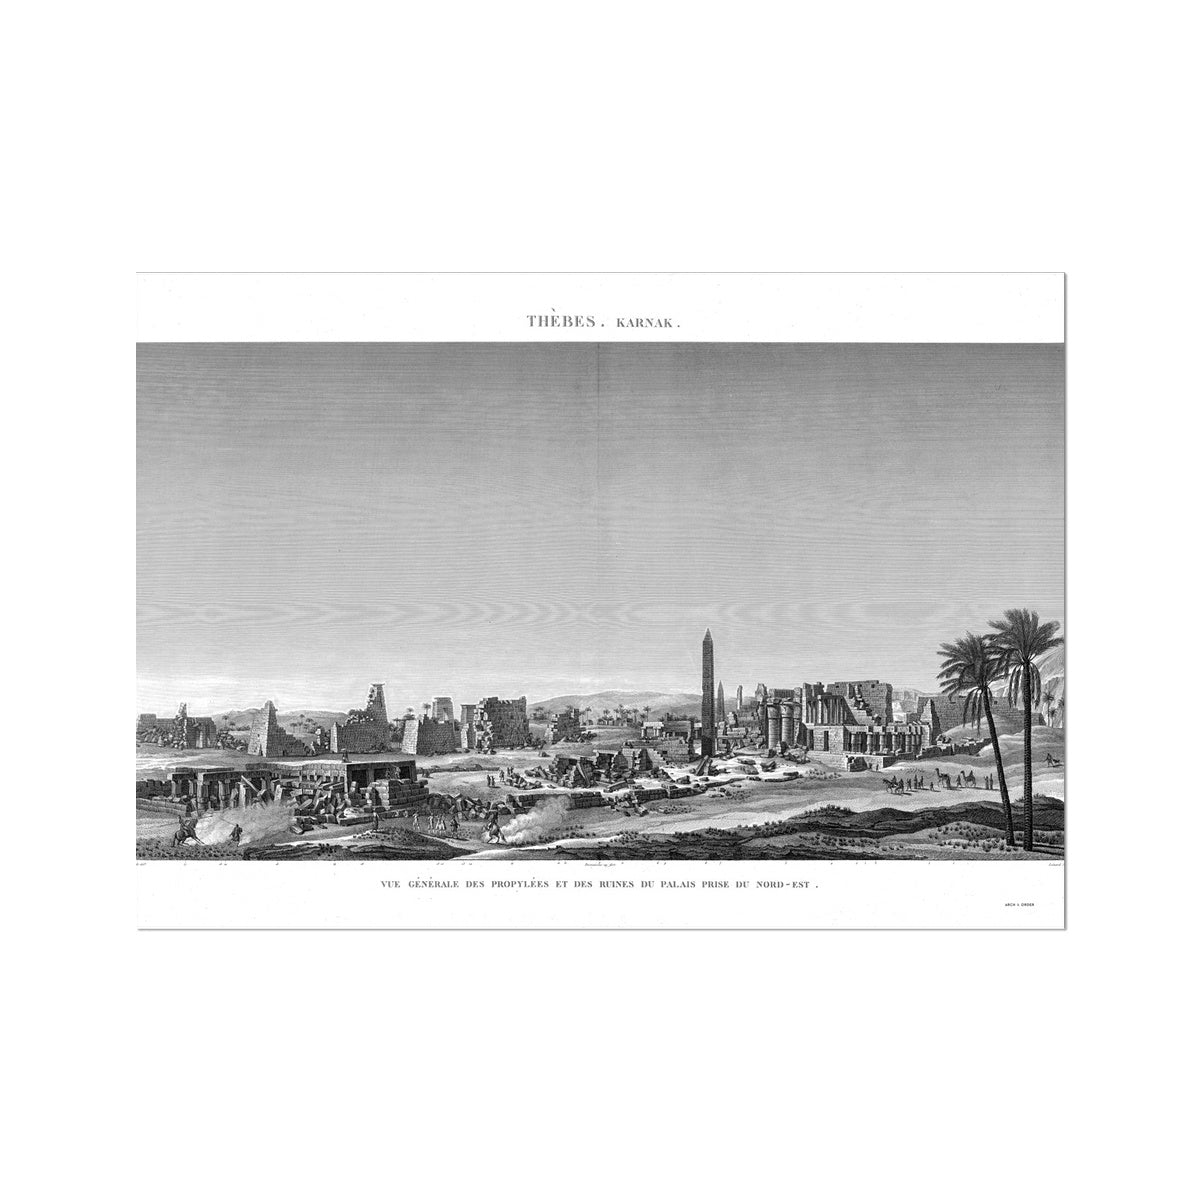 General View of the Palace Ruins - Karnak - Thebes Egypt -  Etching Paper Print